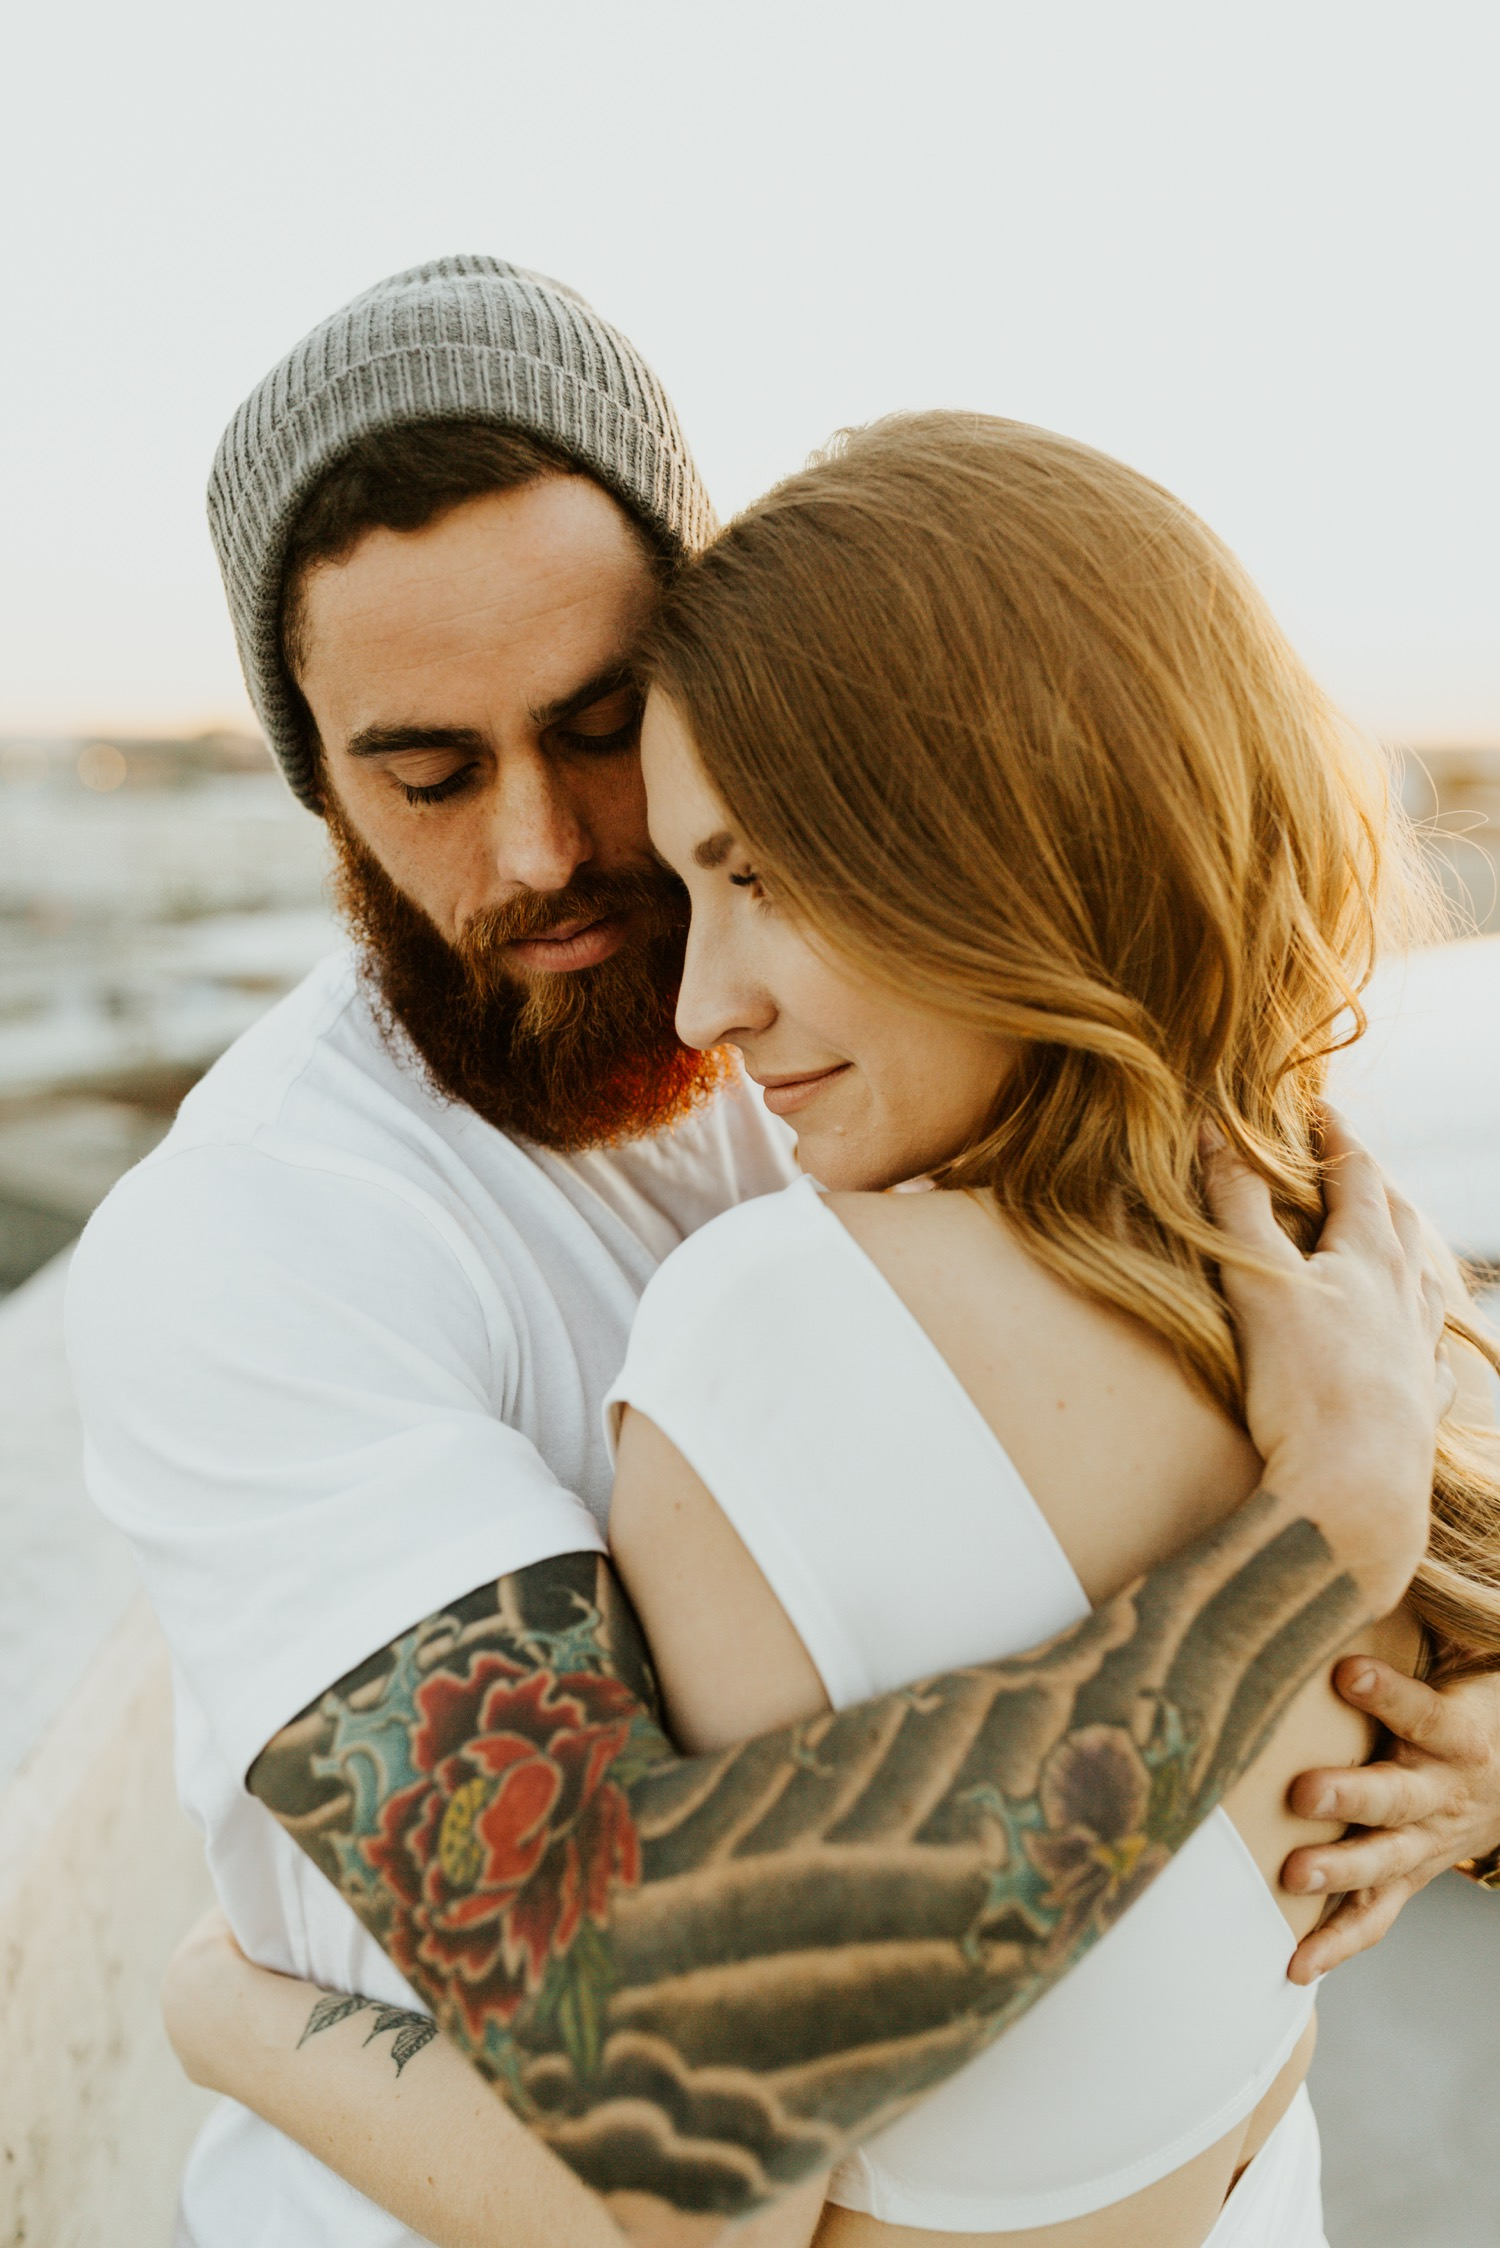 32_Downtown Arts District Los Angeles Engagement Session Megan & Ronnie | Emily Magers Photography-185.jpg